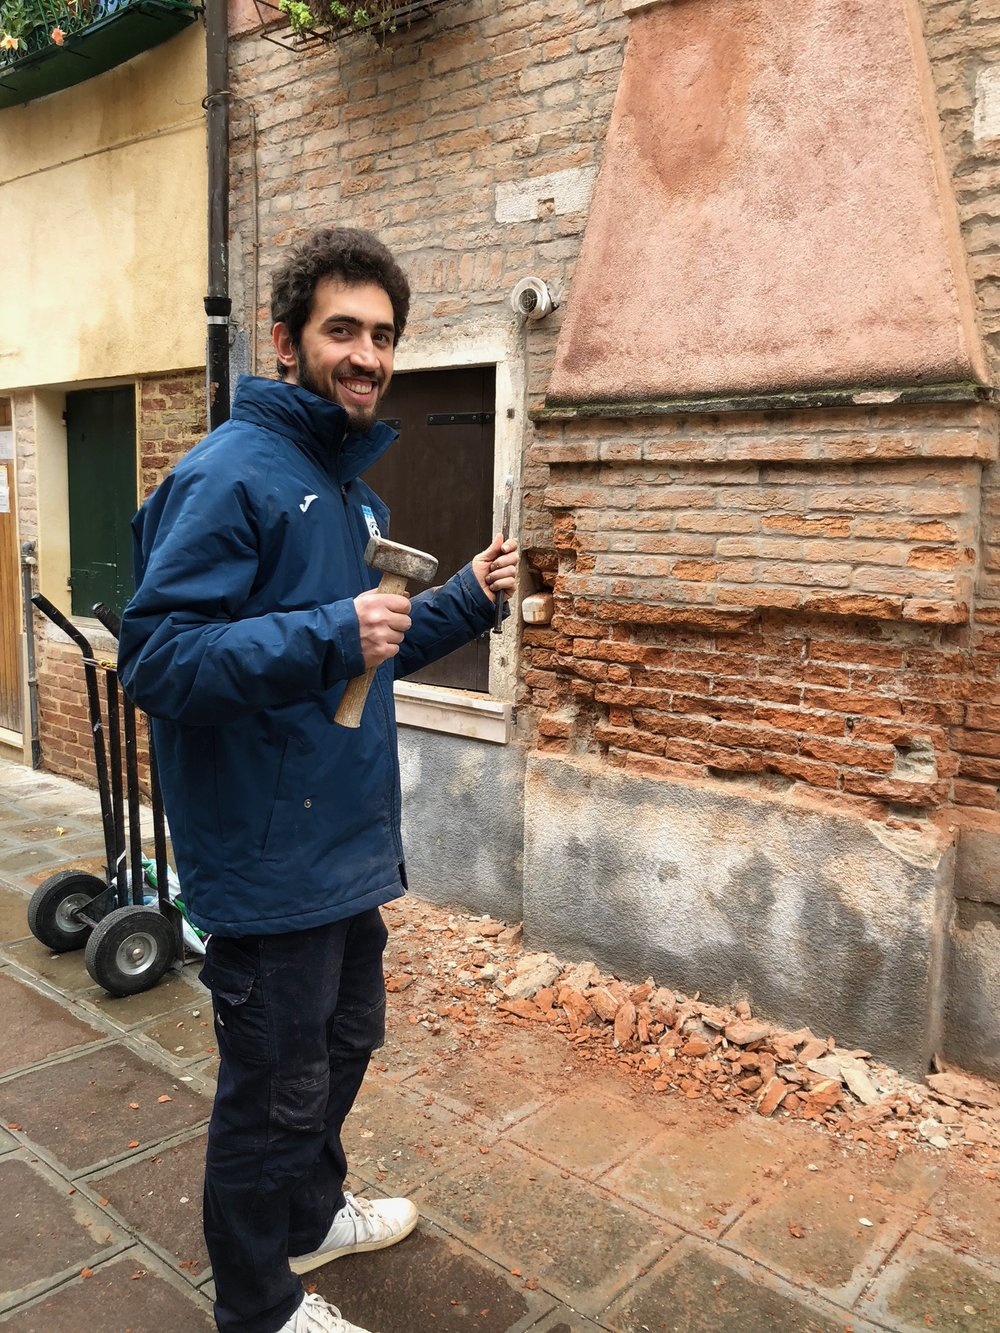 Friendly man refacing brick on Via Marino Secco